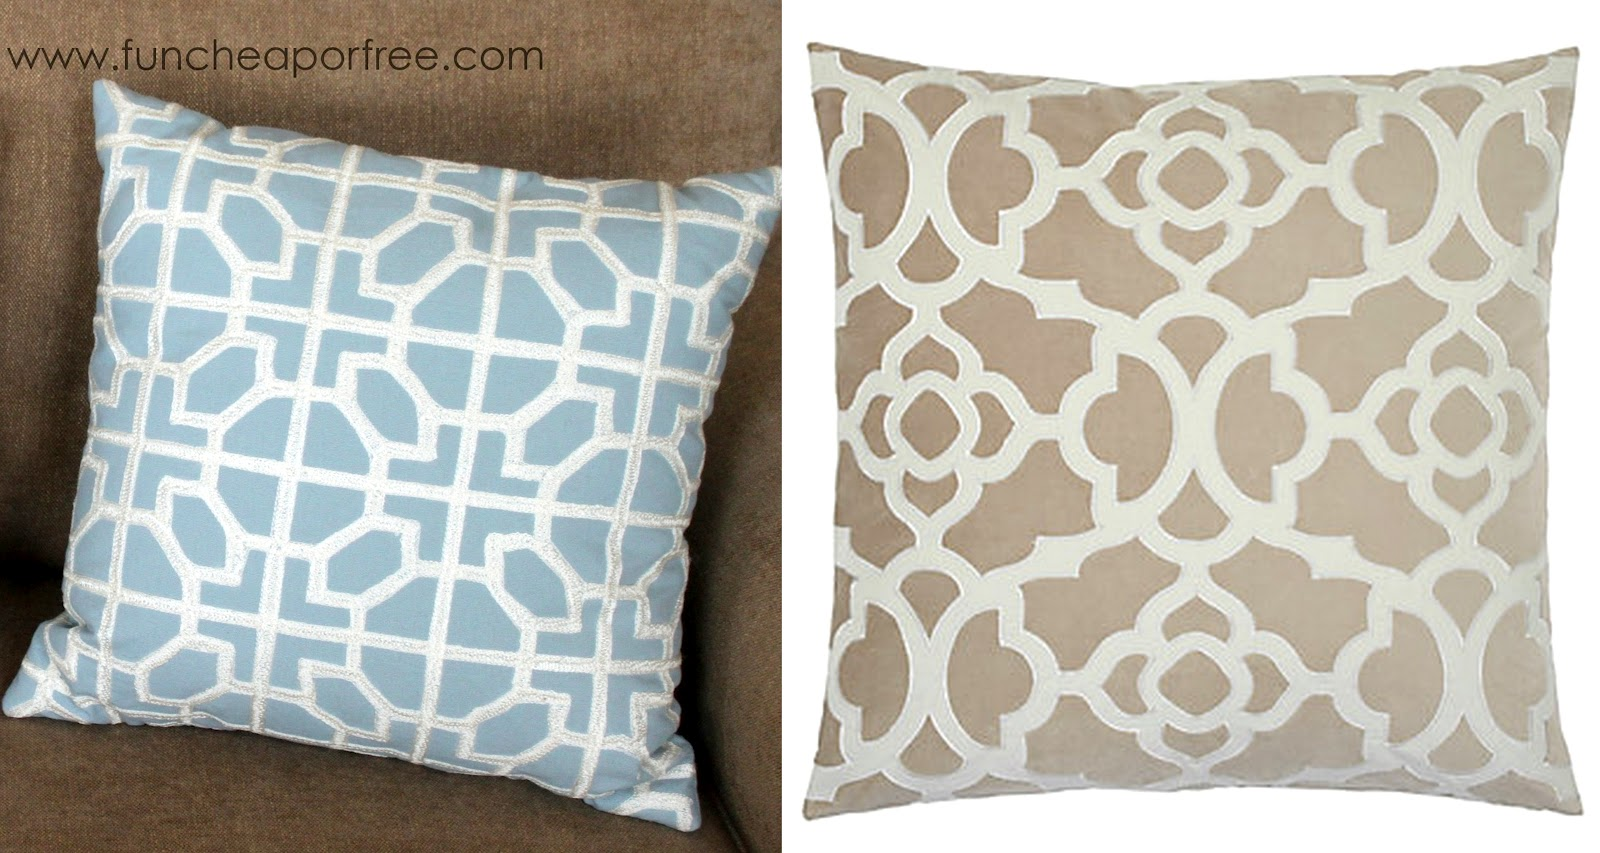 Decorative Pillows At Tj Maxx : Steals and Deals segment: Get THE LOOK for less! Where to find great deals on throw pillows ...